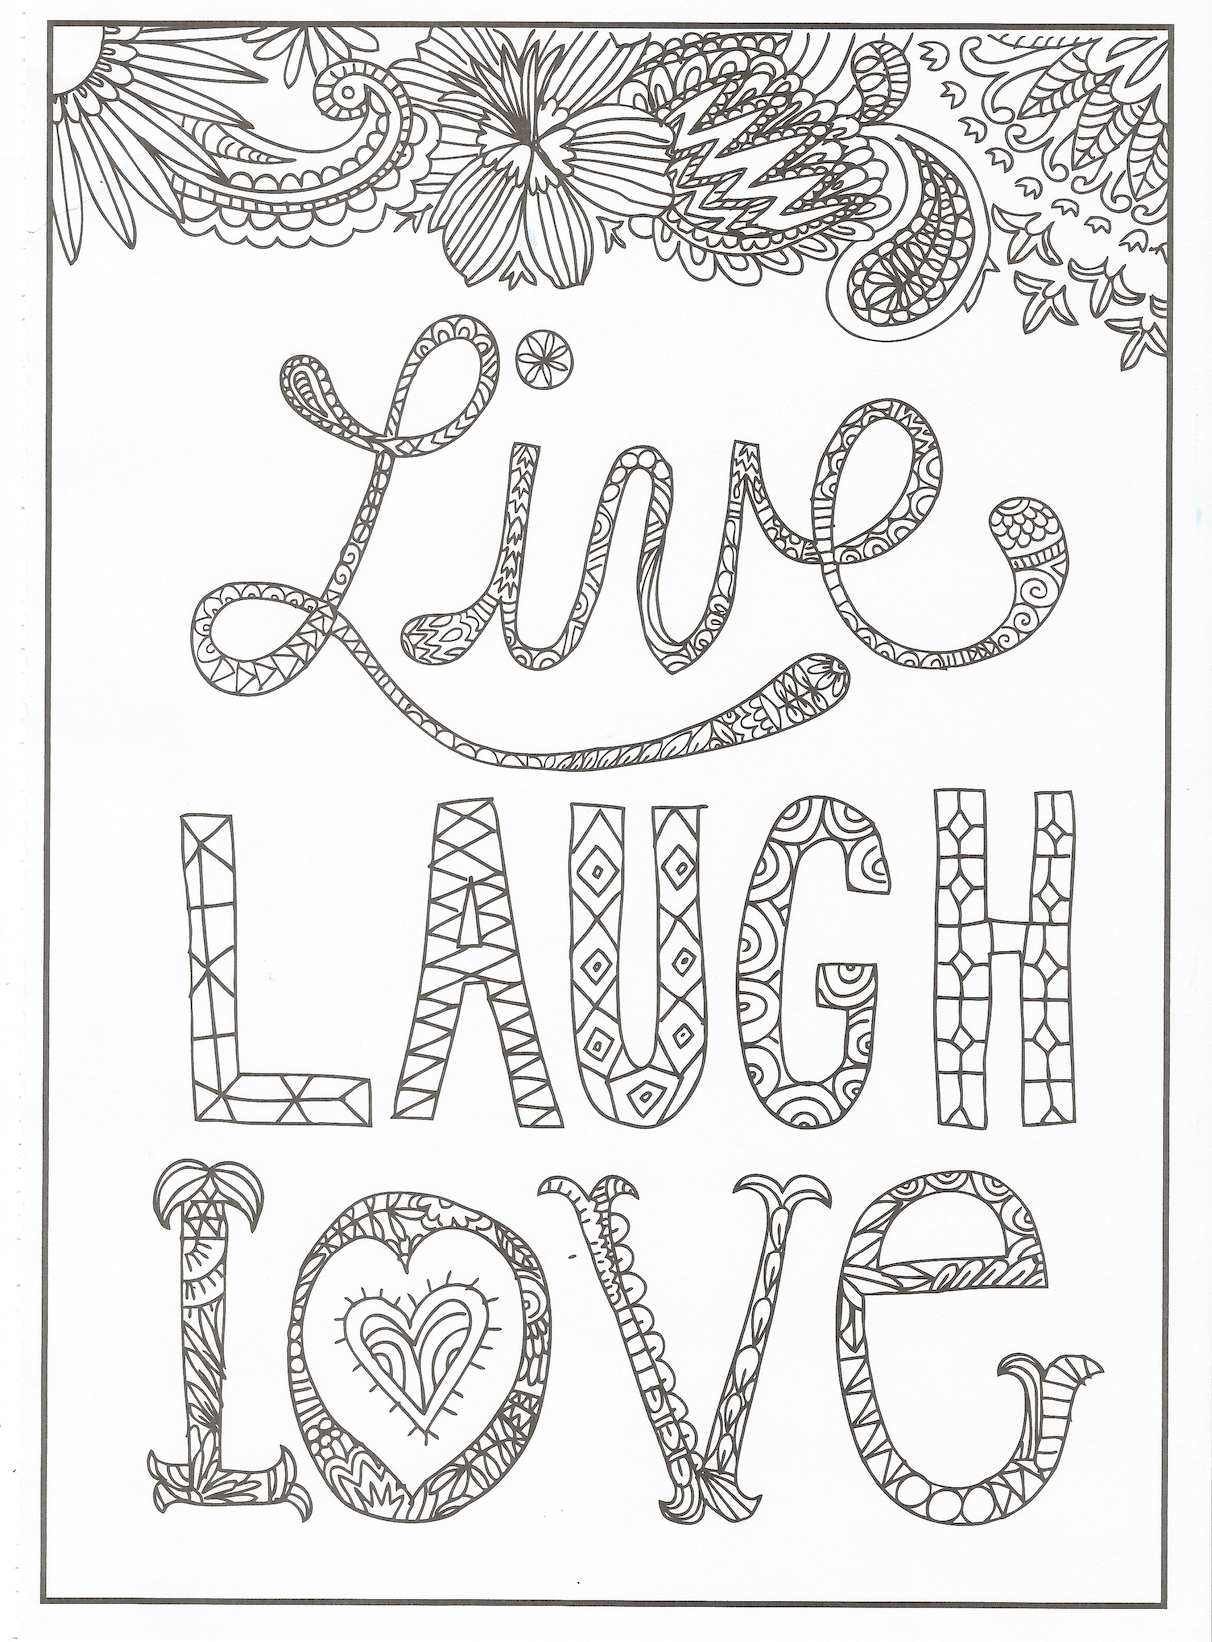 Timeless Creations - Creative Quotes Coloring Page - Live Laugh Love ...